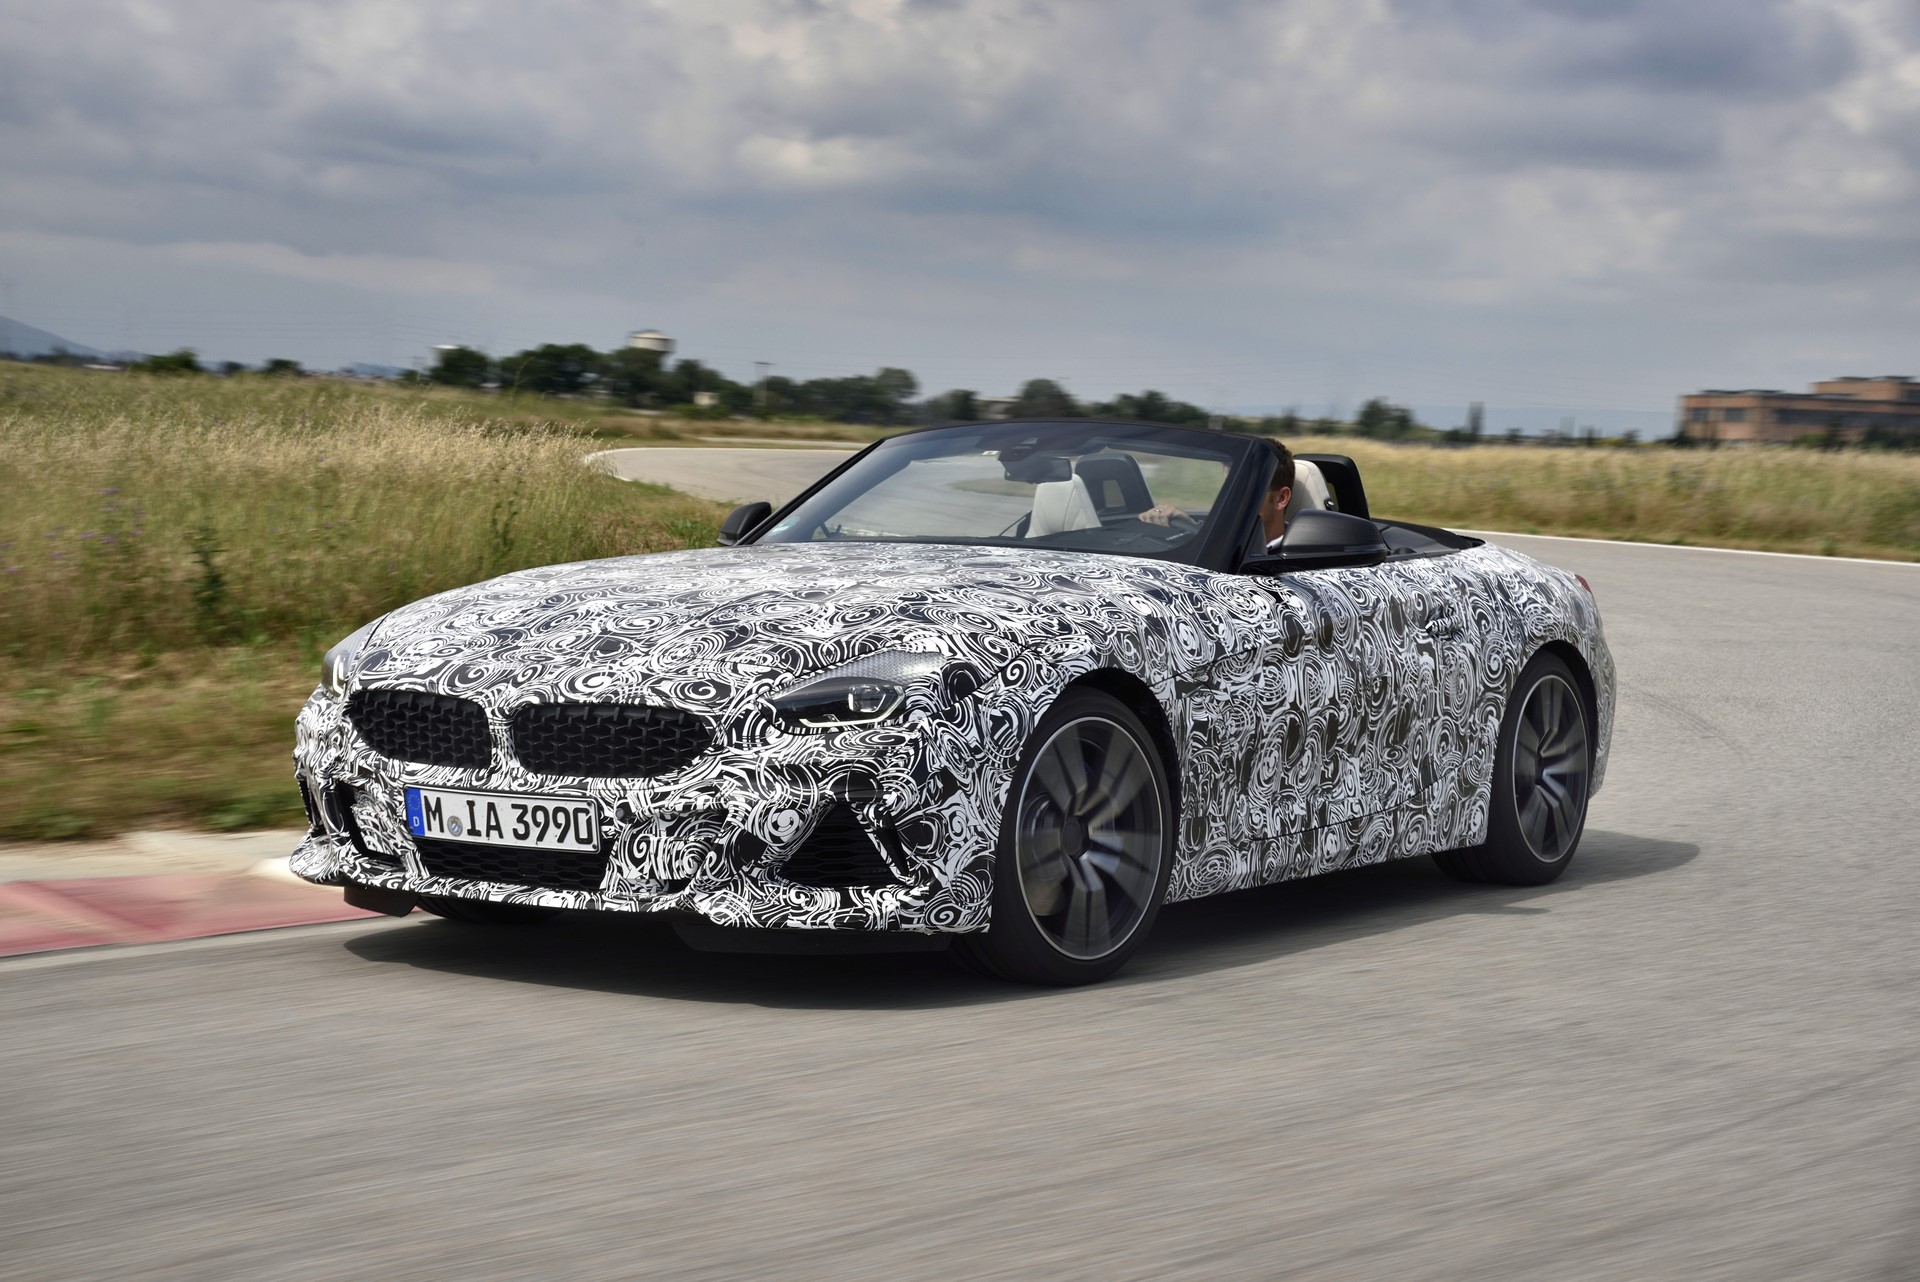 BMW Z4 M40i 2019 official spy photos (29)